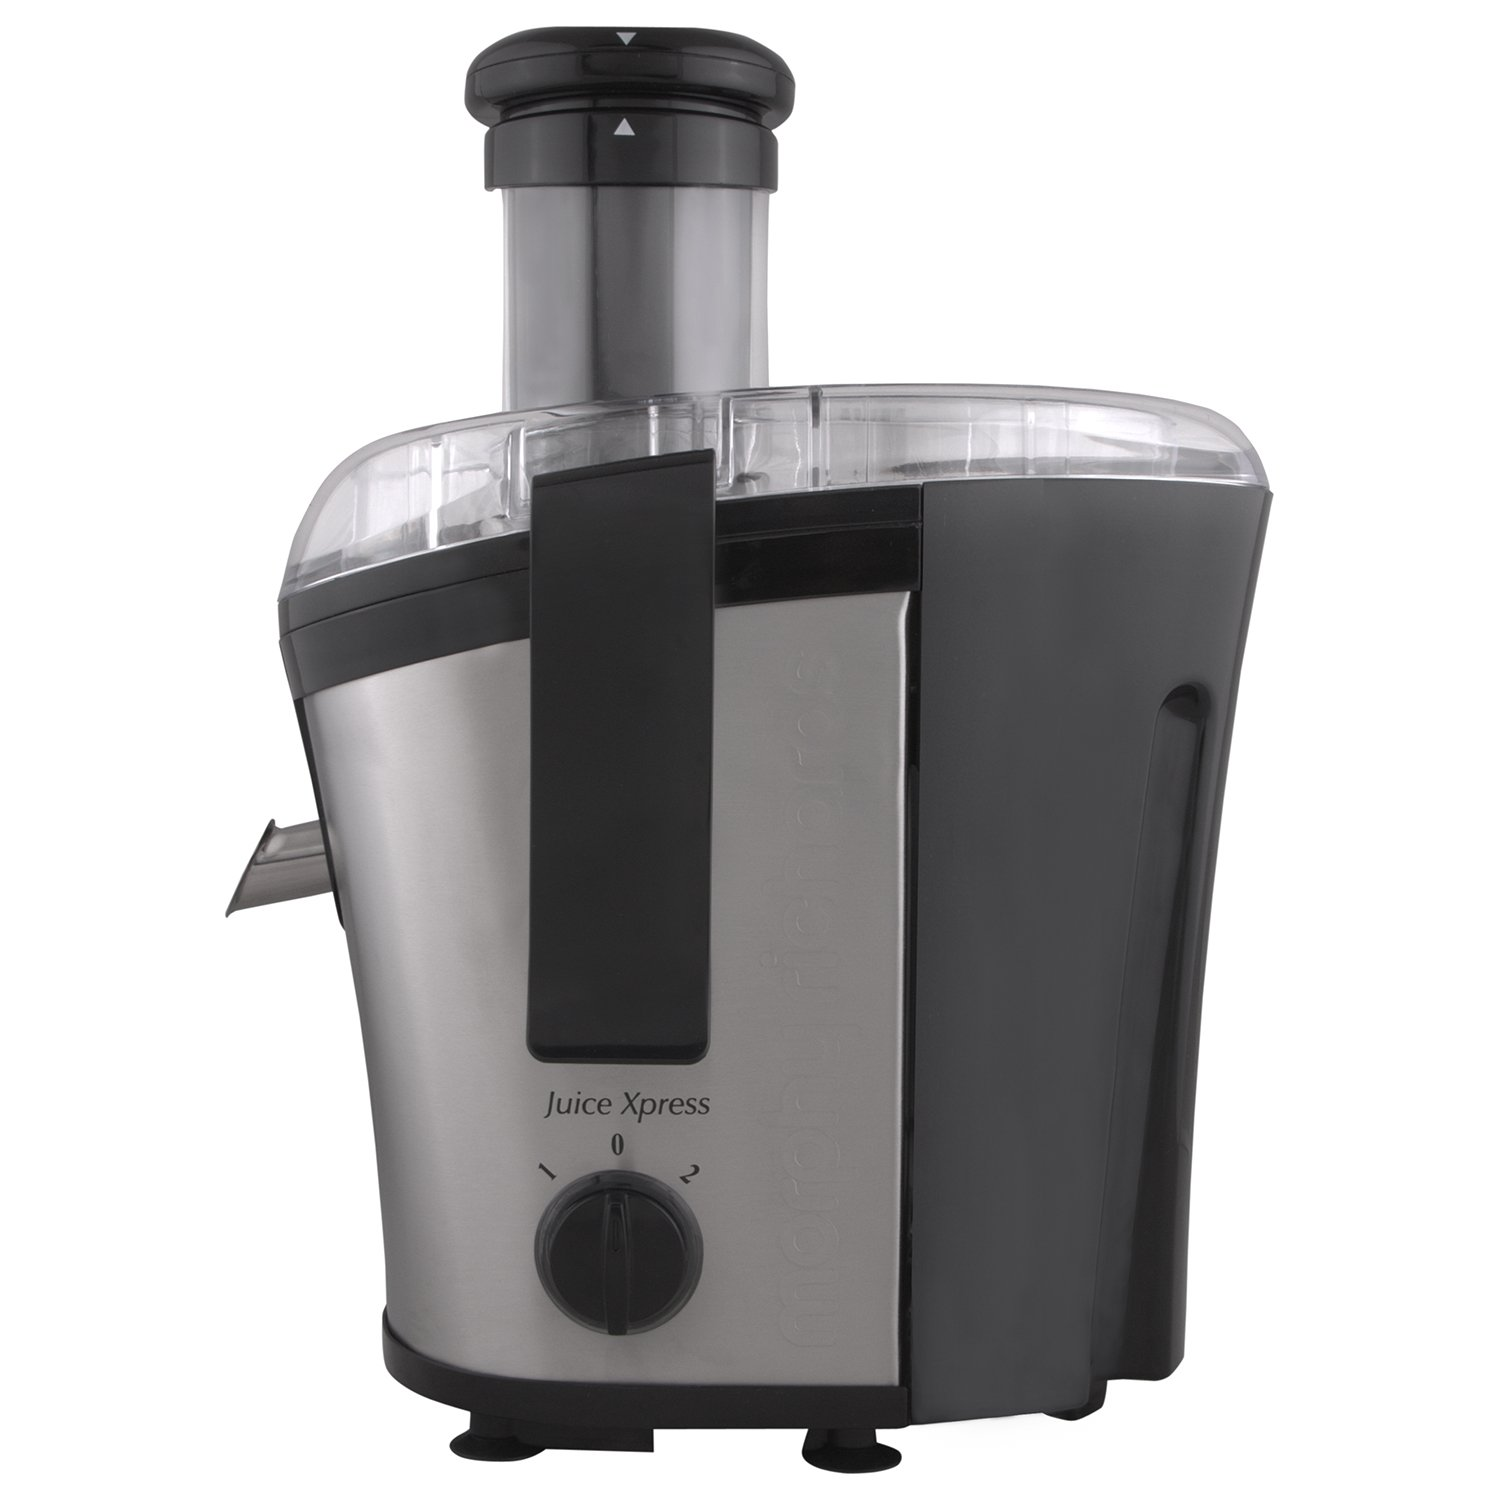 Morphy Richards Juice Xpress Juicer